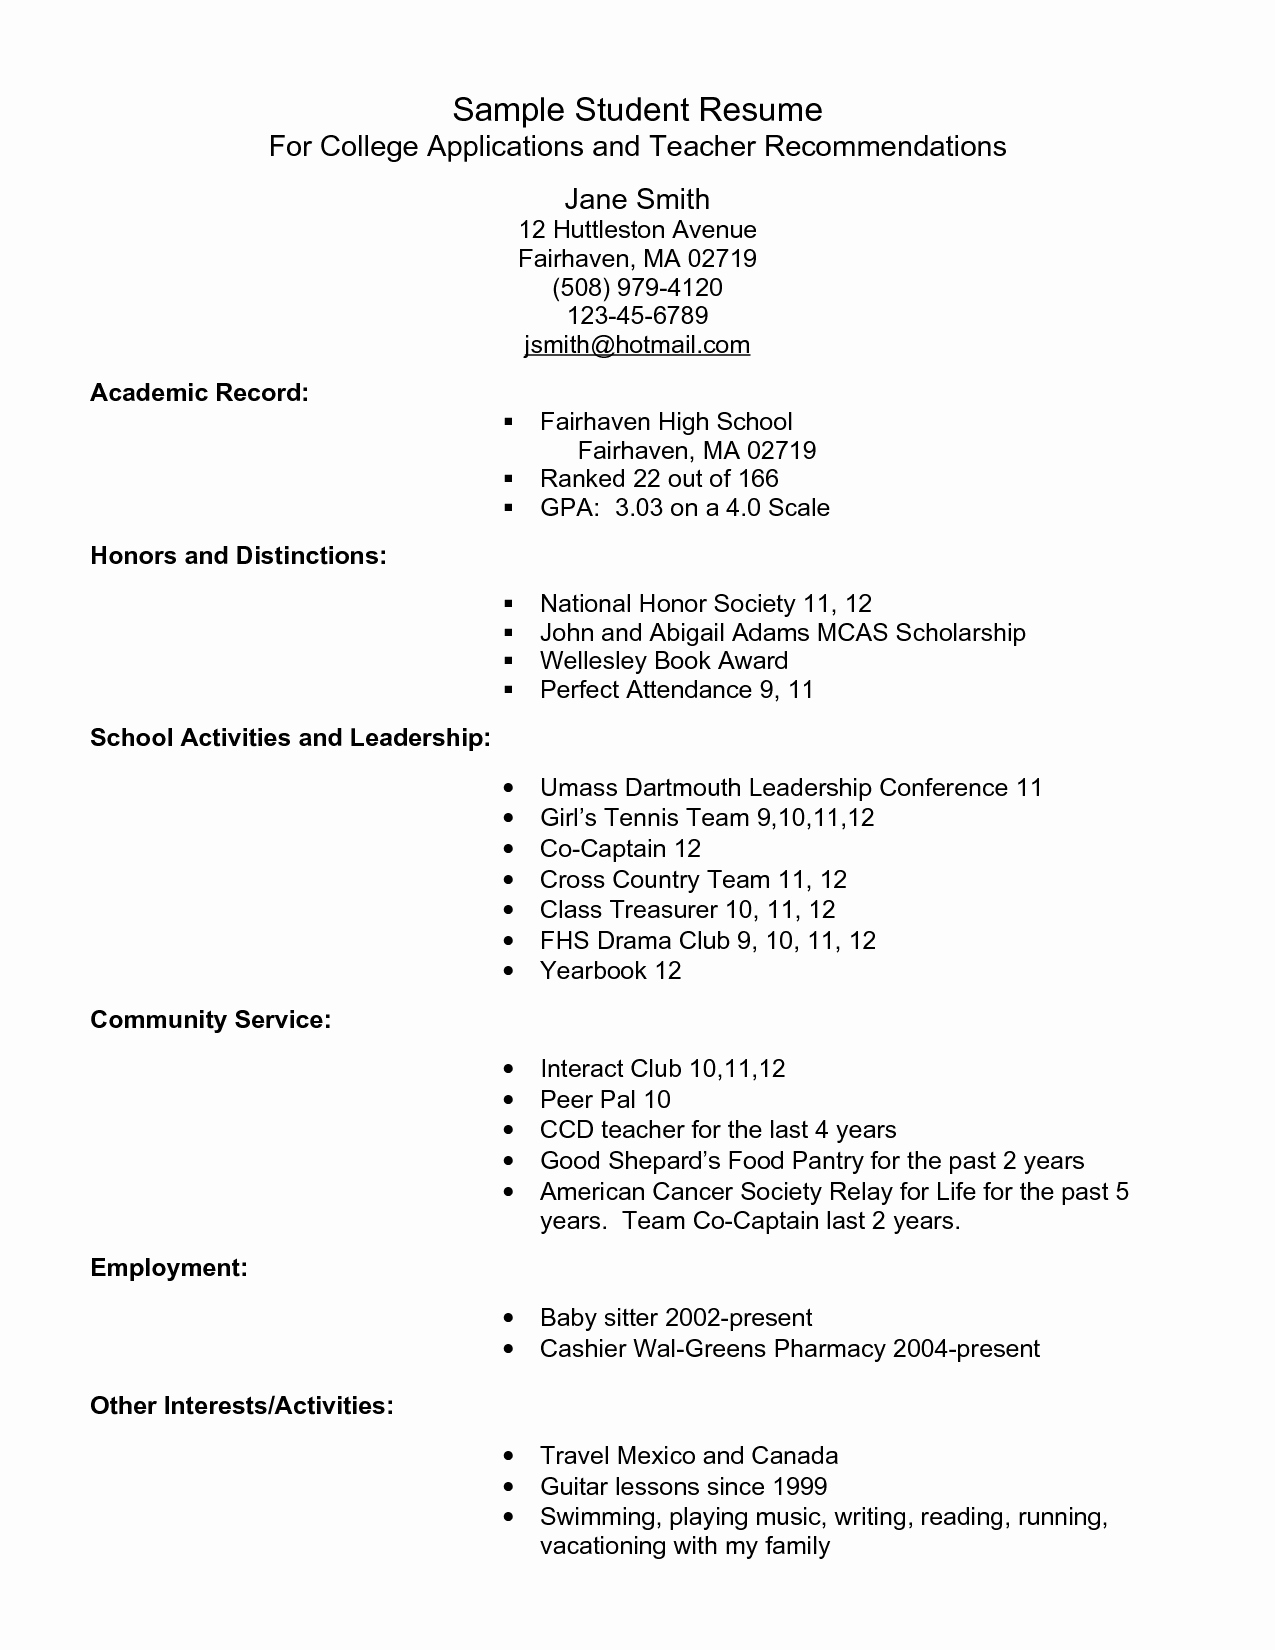 How to Fill Out A Resume for High School Students Resume